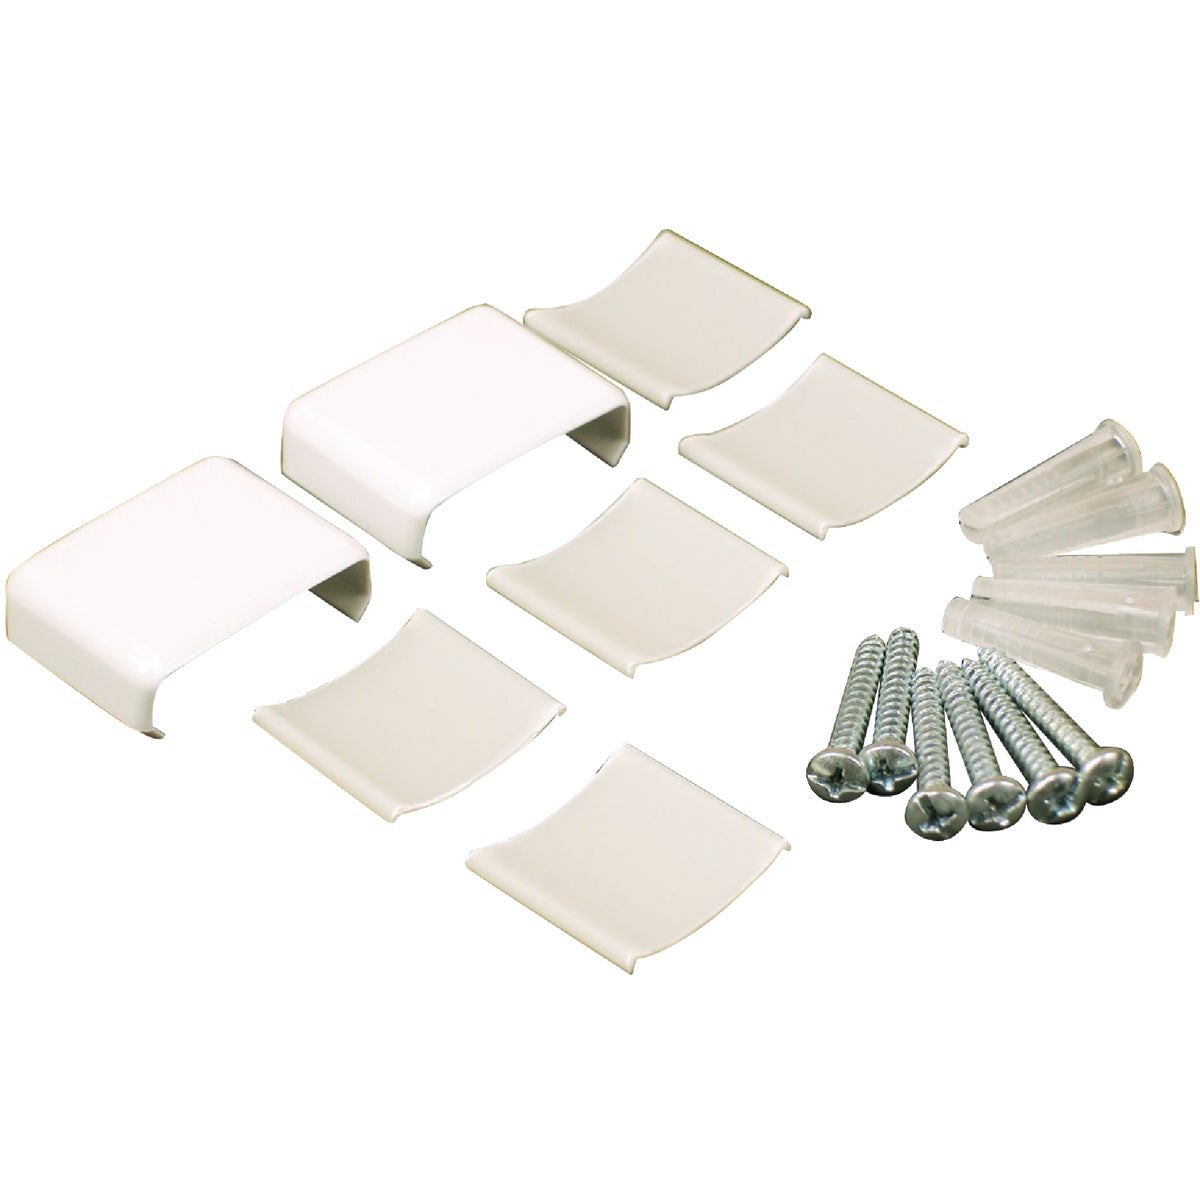 Accessories Kit - NMW910 by Wiremold / Legrand